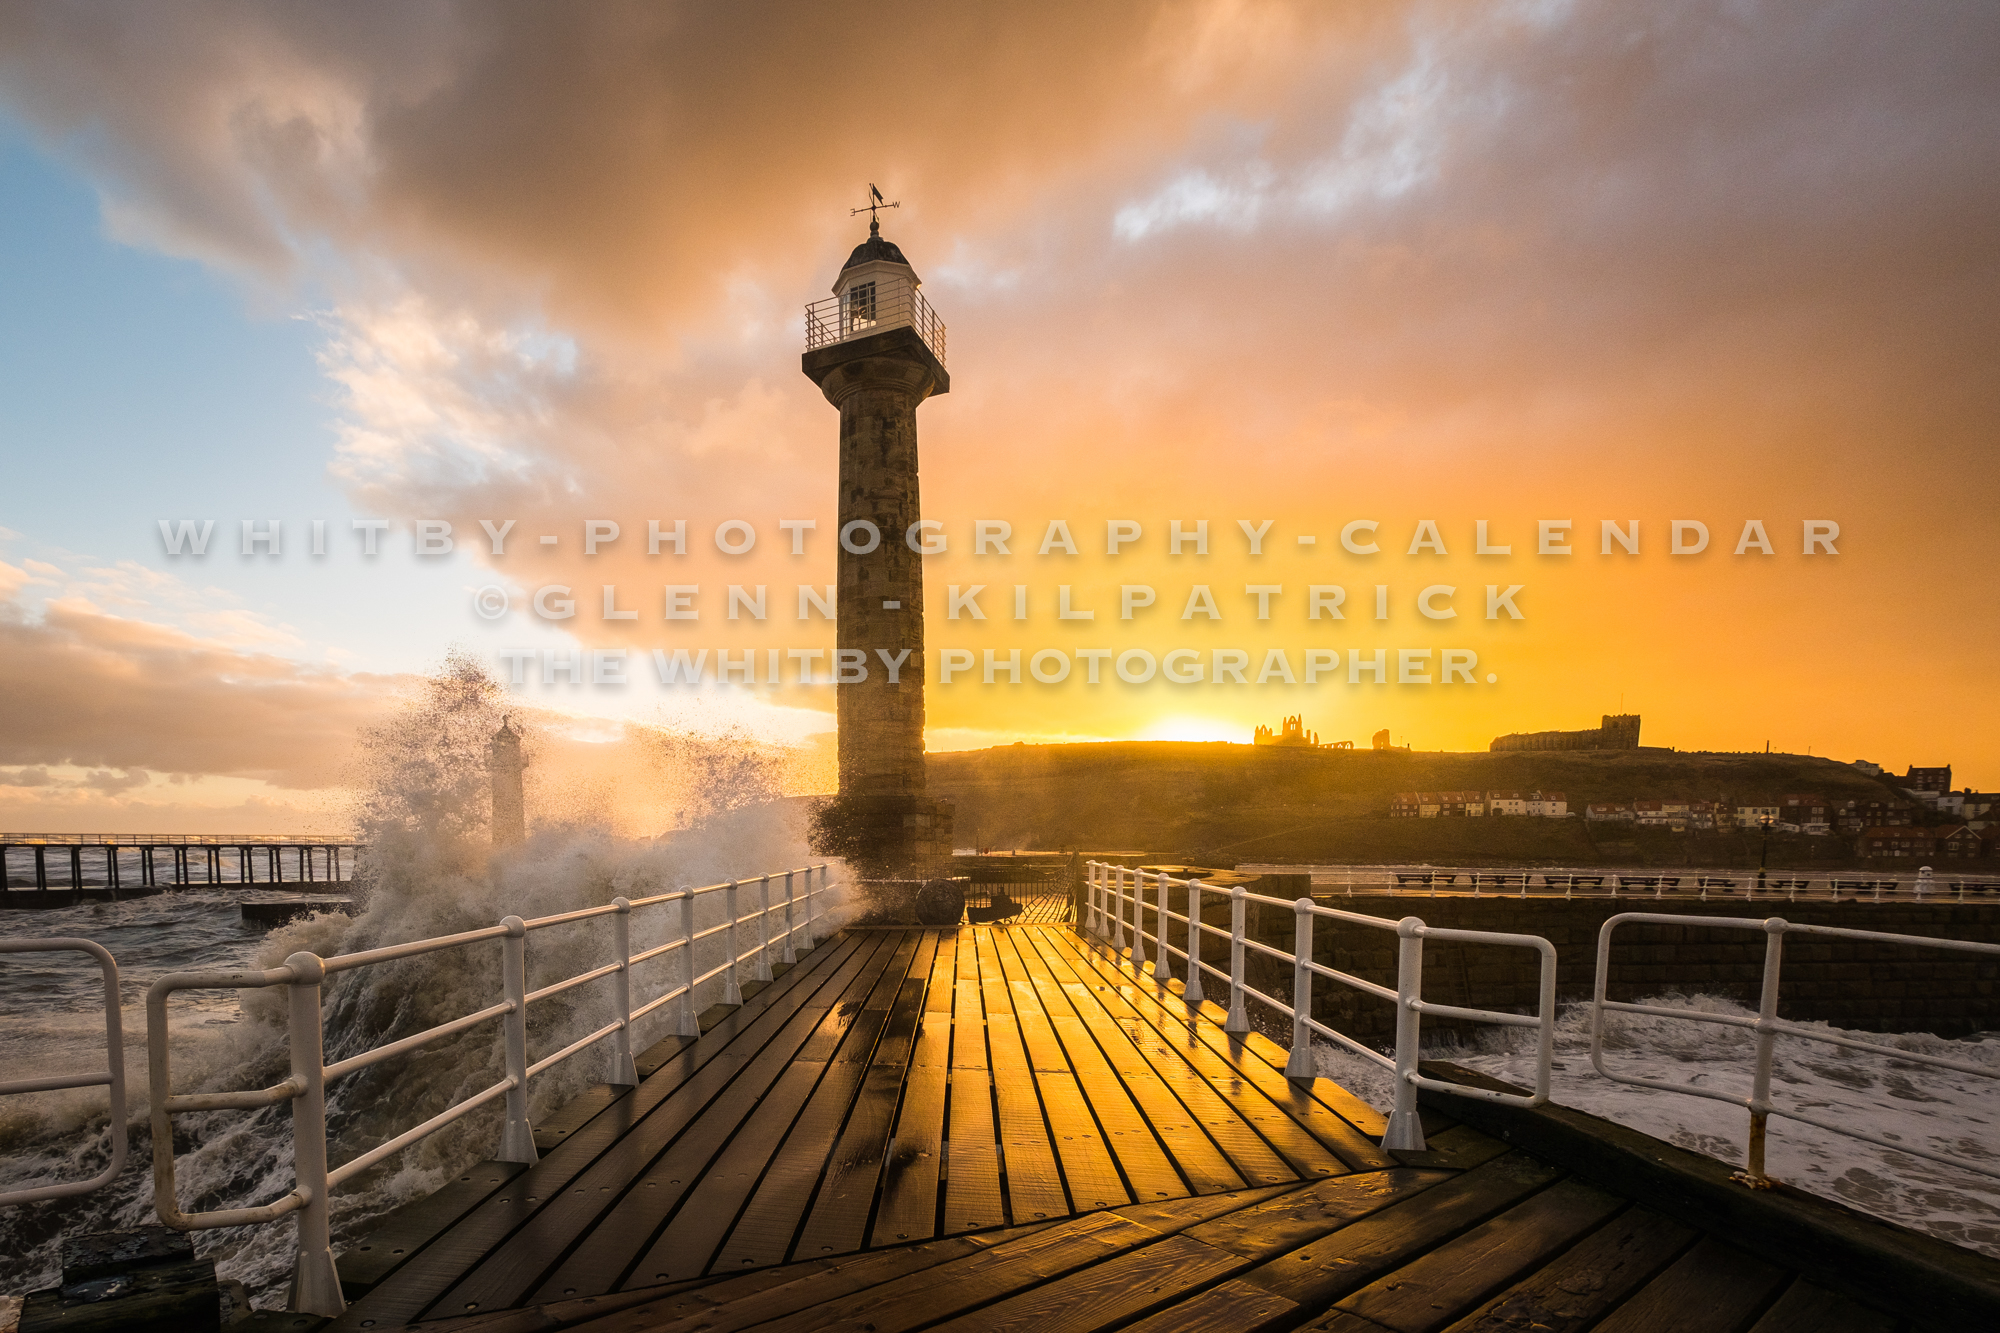 The Whitby Photography Calendar 2018 Front Cover Image